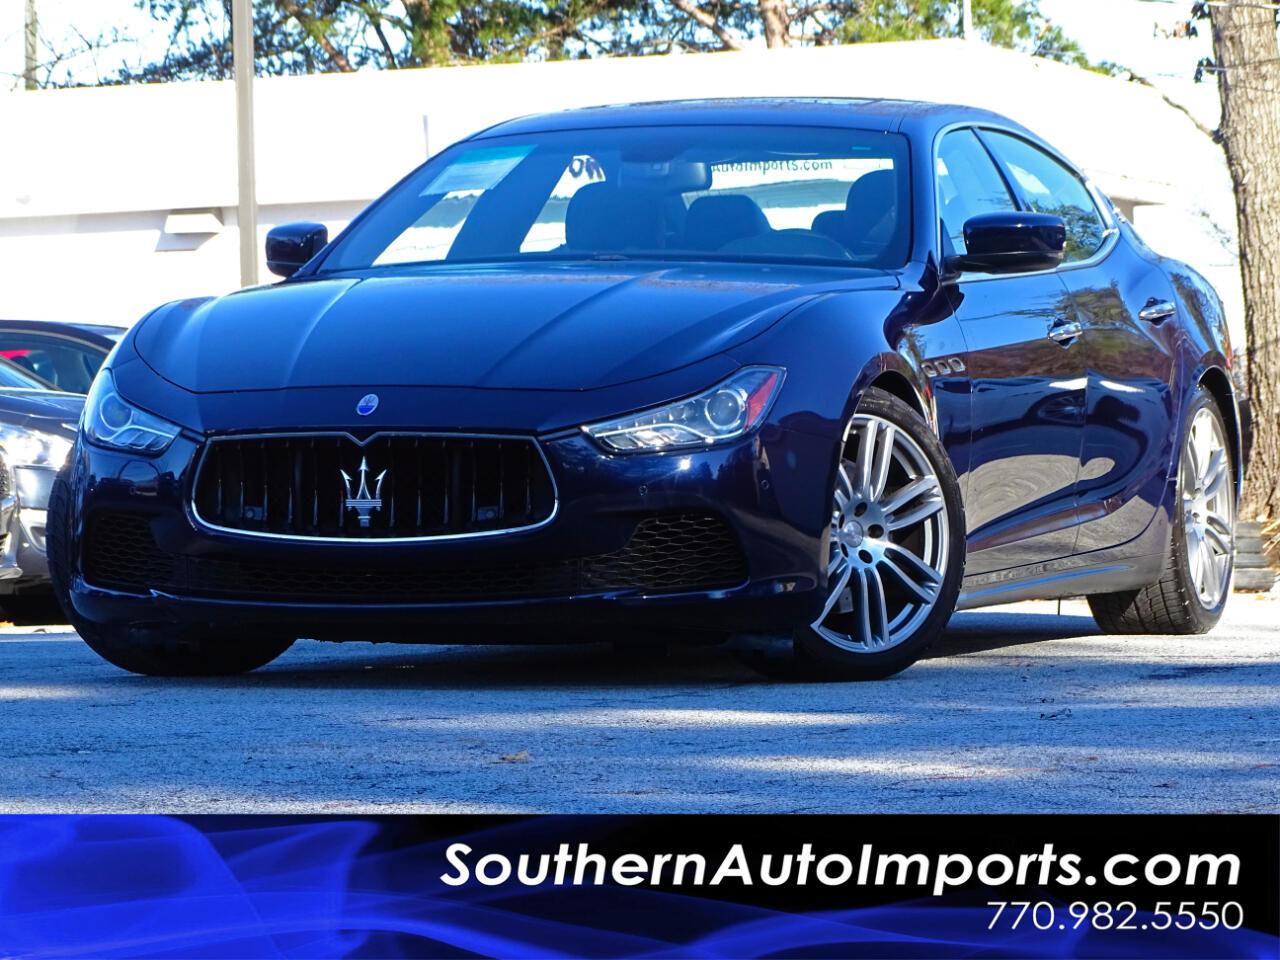 2015 Maserati Ghibli S Q4 w/Sport Package 1owner Navigation